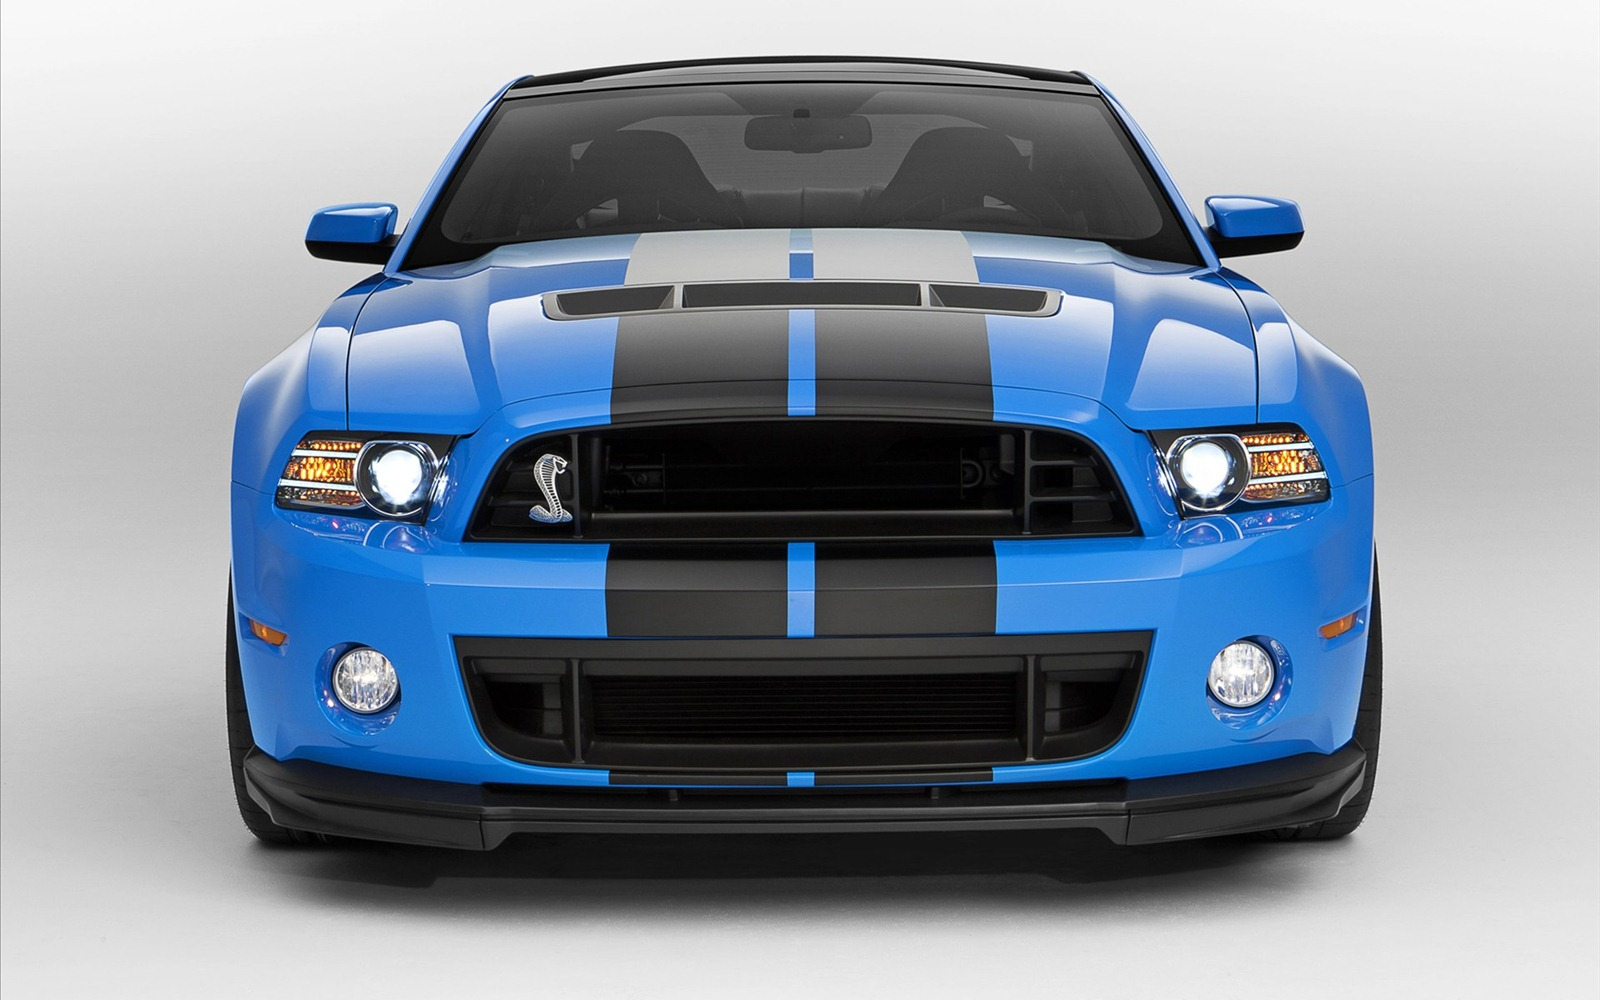 2013 Ford Shelby GT500 raises the bar high on performance with the 1600x1000